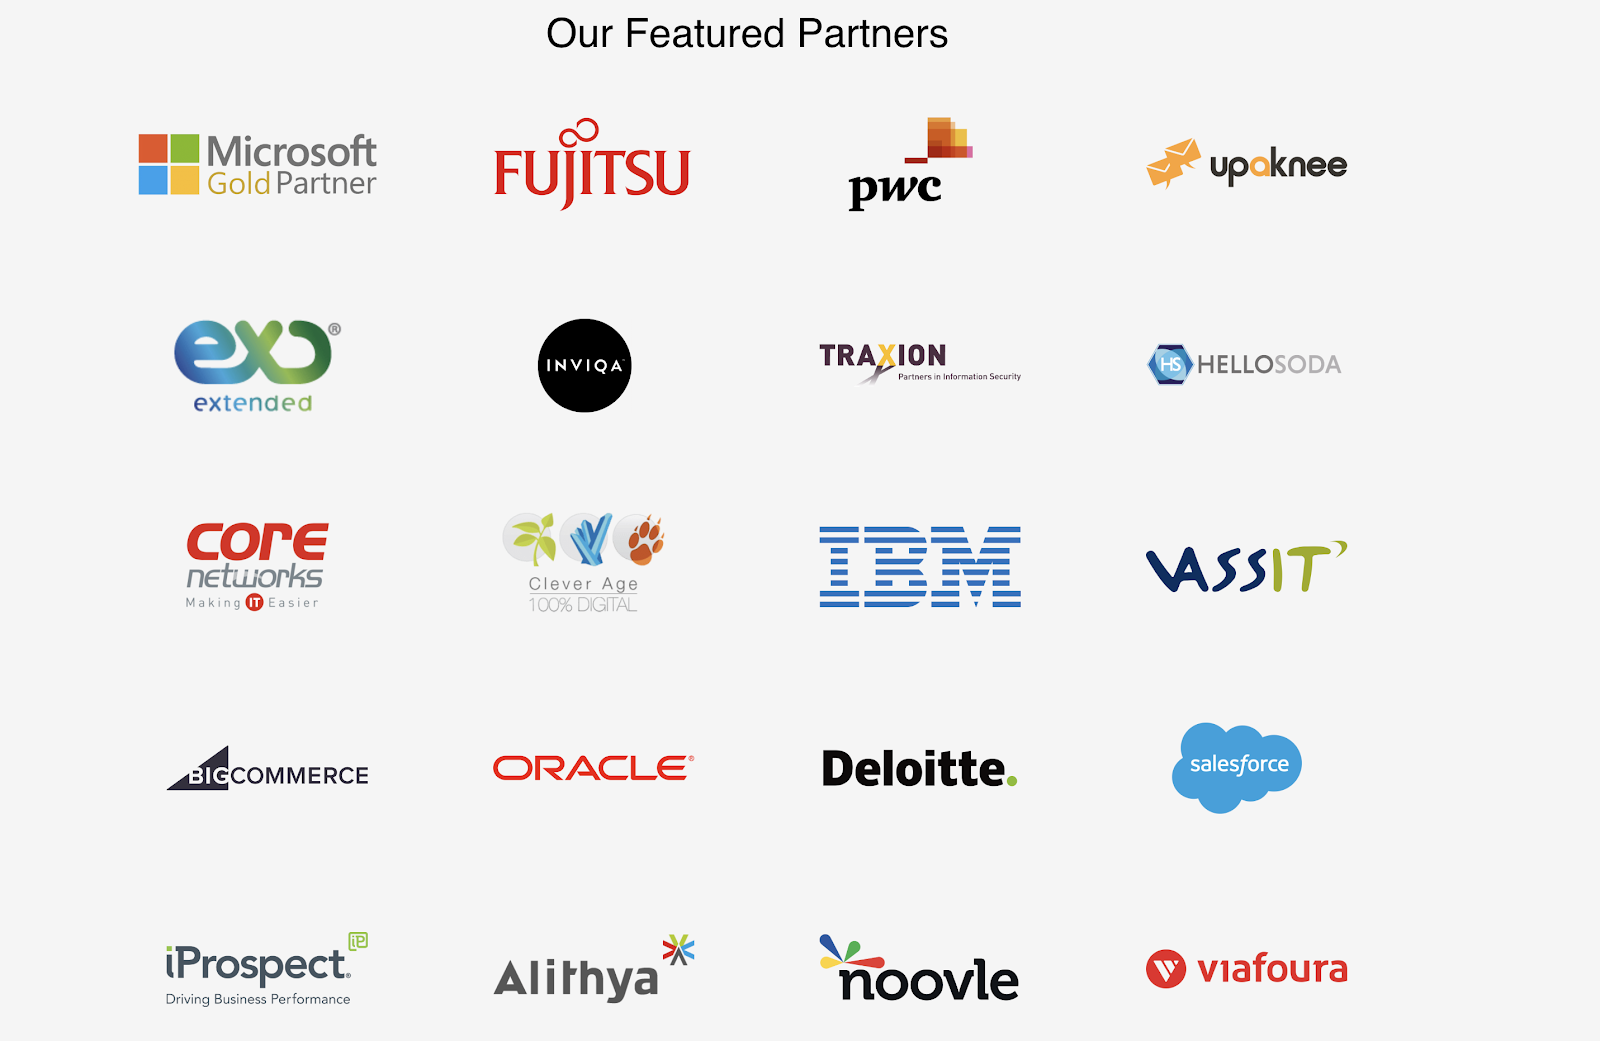 Rows of logos from trusted and established partners of LoginRadius: Microsoft, Deloitte, IBM, Salesforce, PWC, Oracle, and more.